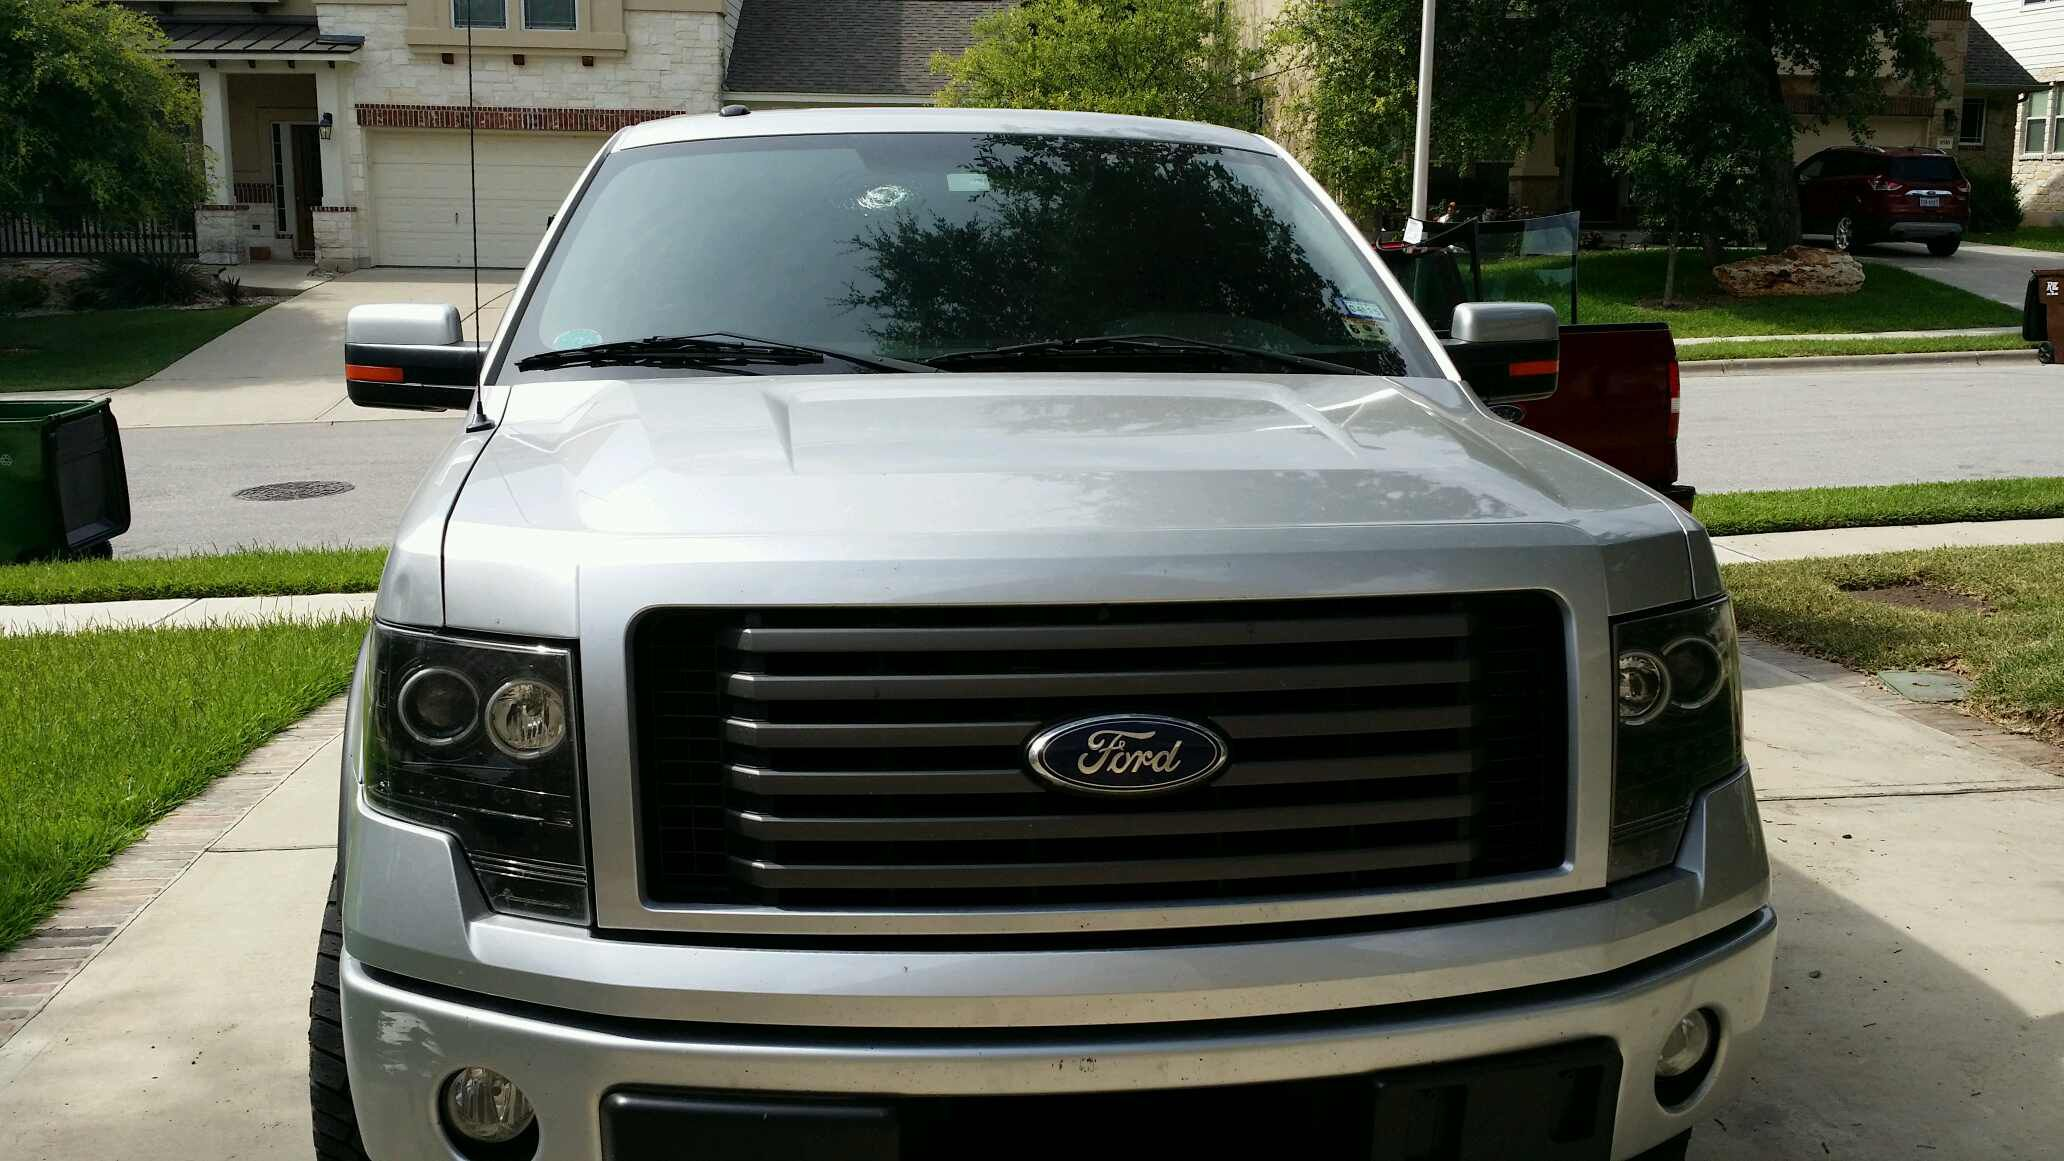 F-150 4 Door Crew Cab Windshield Replacement Prices   Local Auto ... 0db6786afc4